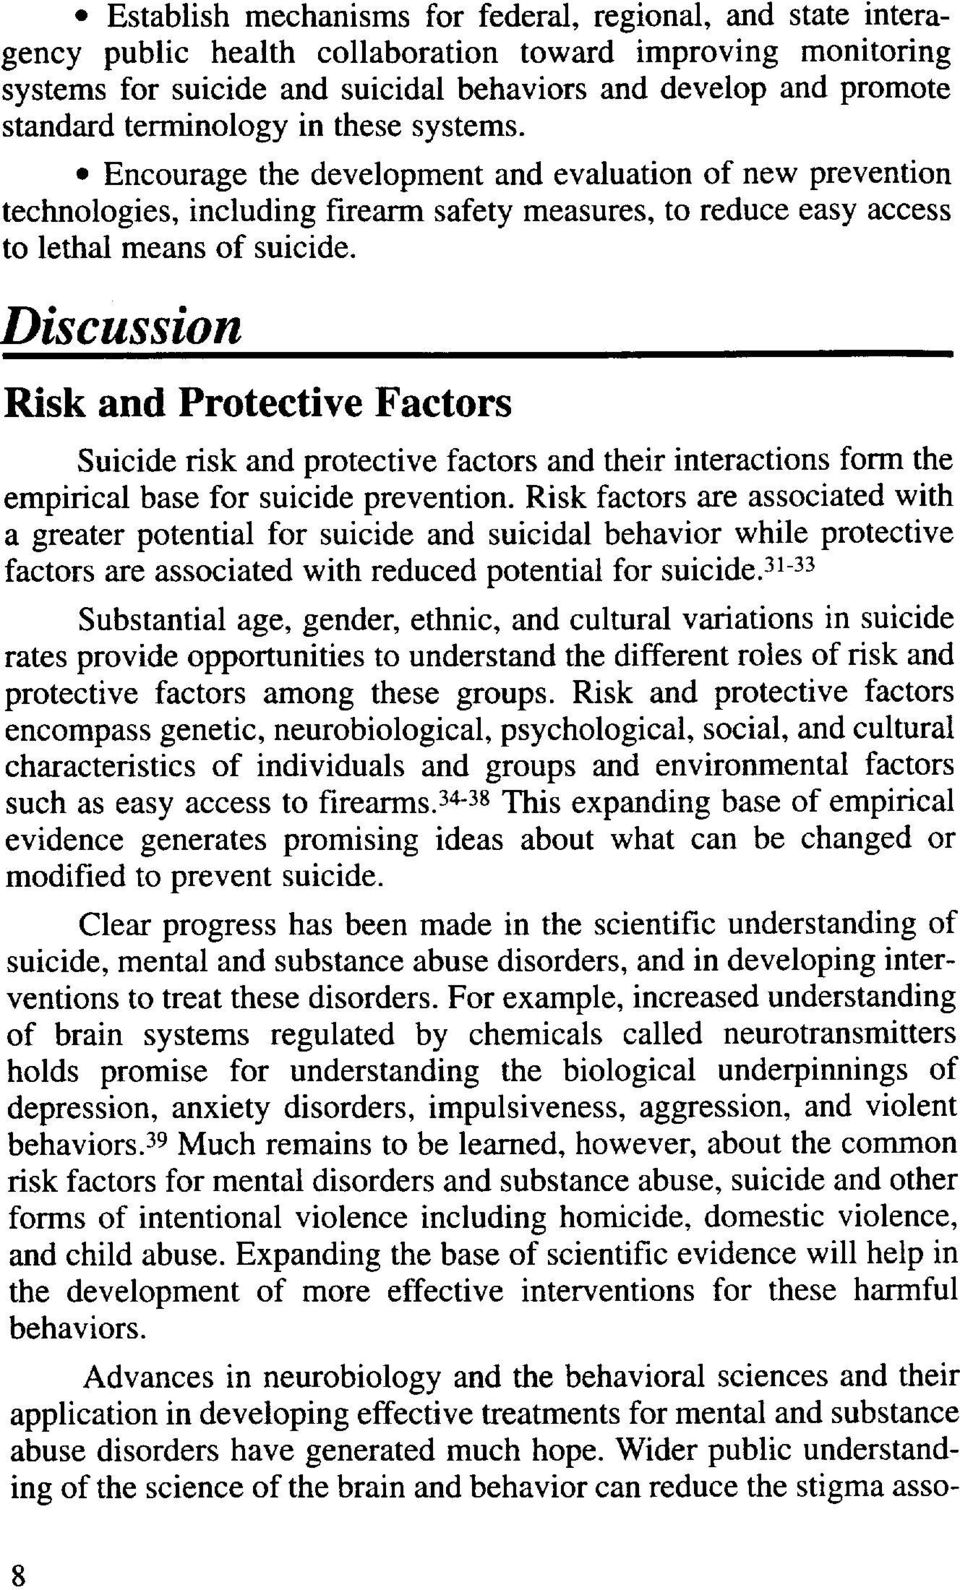 Discussion Risk and Protective Factors Suicide risk and protective factors and their interactions form the empirical base for suicide prevention.